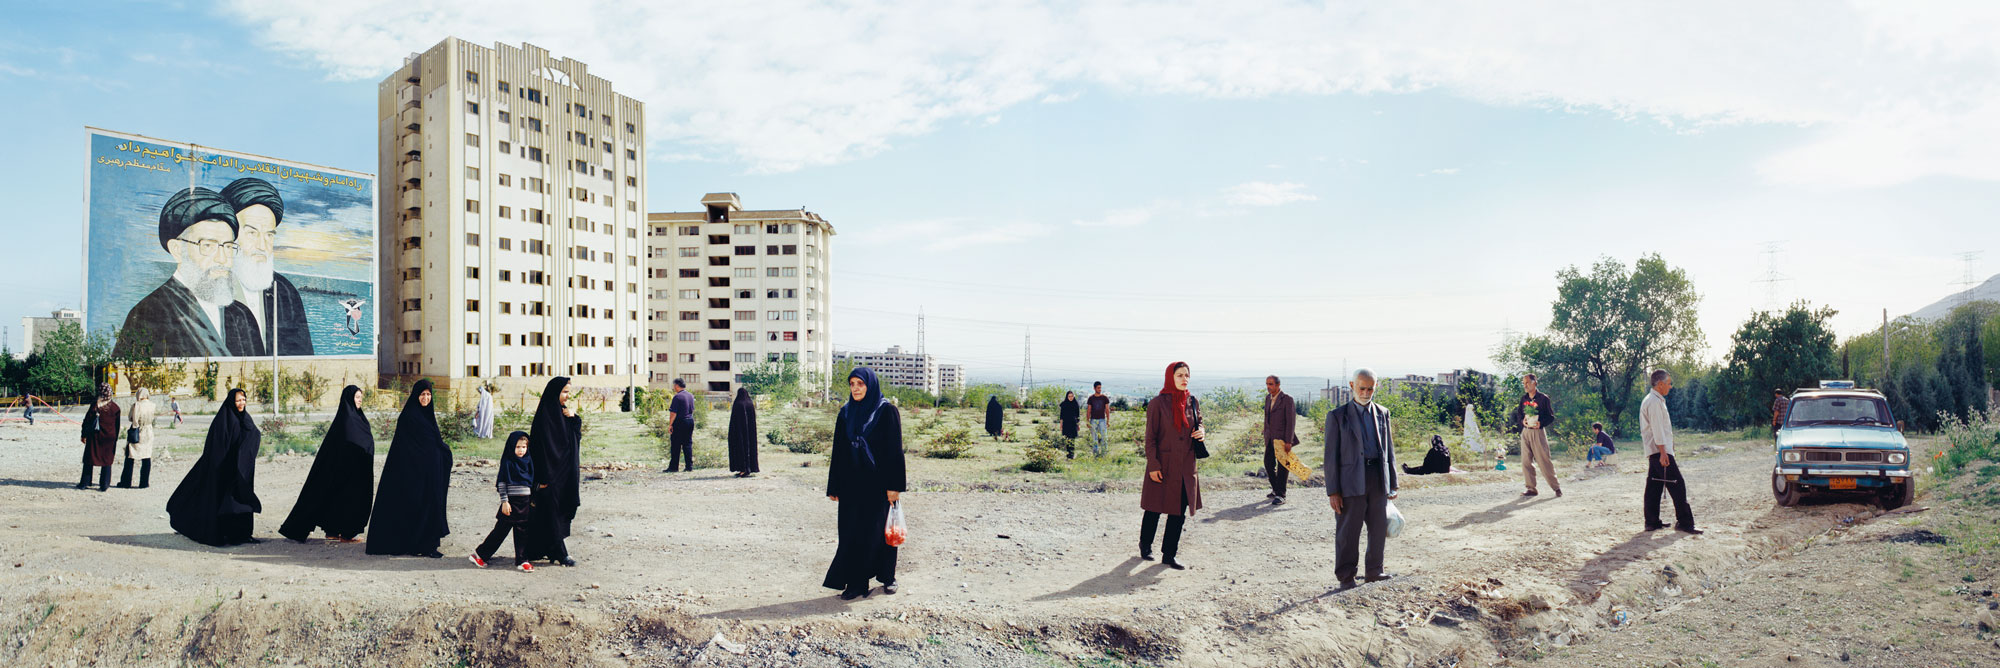 A panoramic view of the outskirts of a city. A number of muslim women and men are dispersed across the scene, either walking or standing. In the background we see a large billboard next to two apartment blocks.